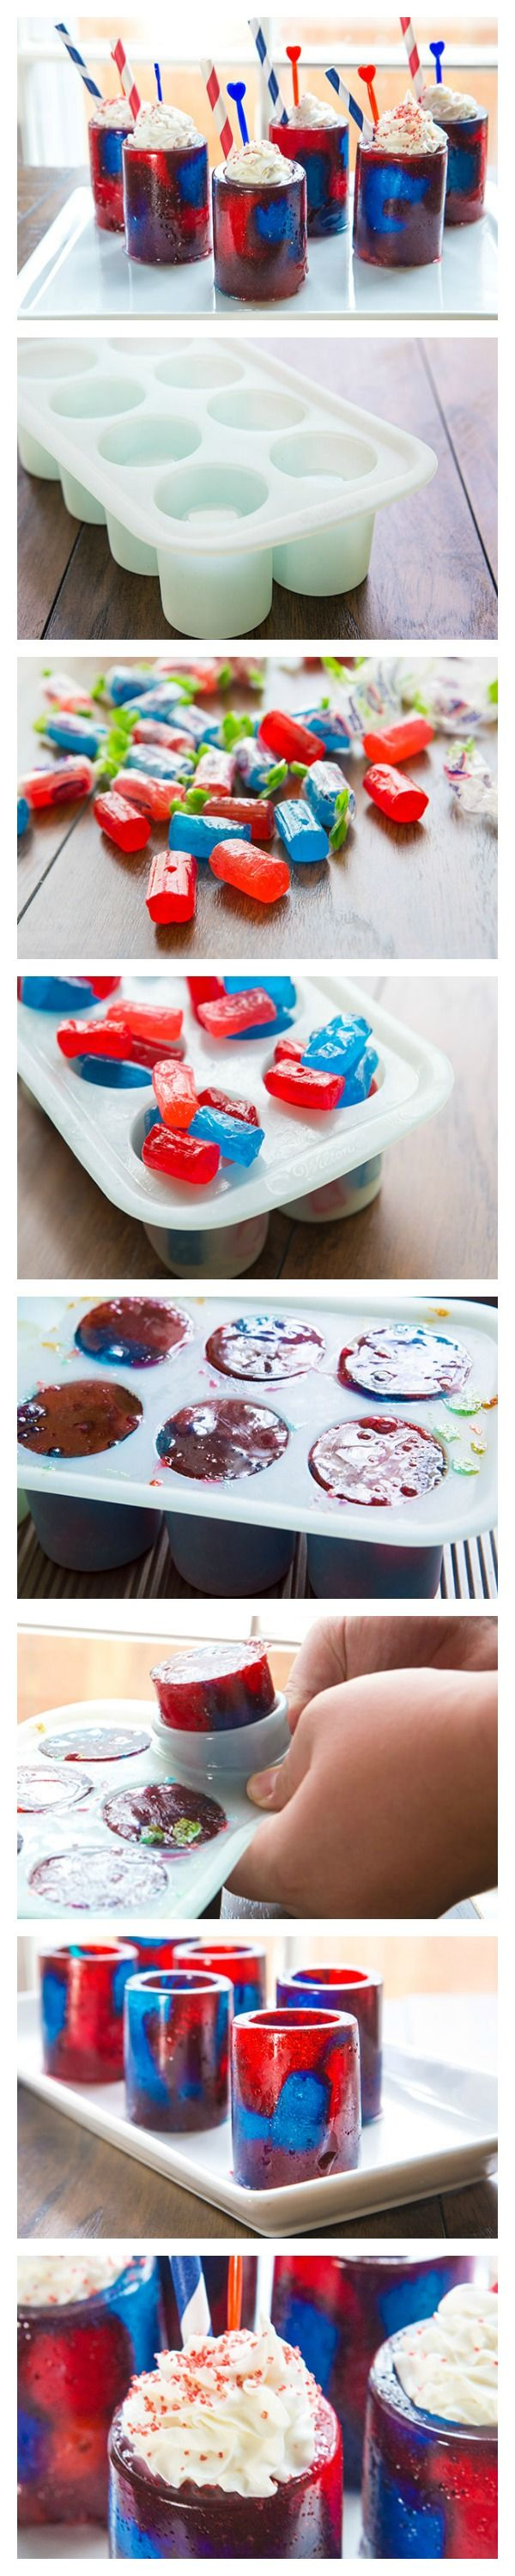 An adorable idea got us all inspired to go red, white and blue and make ourselves some patriotic shot glasses.